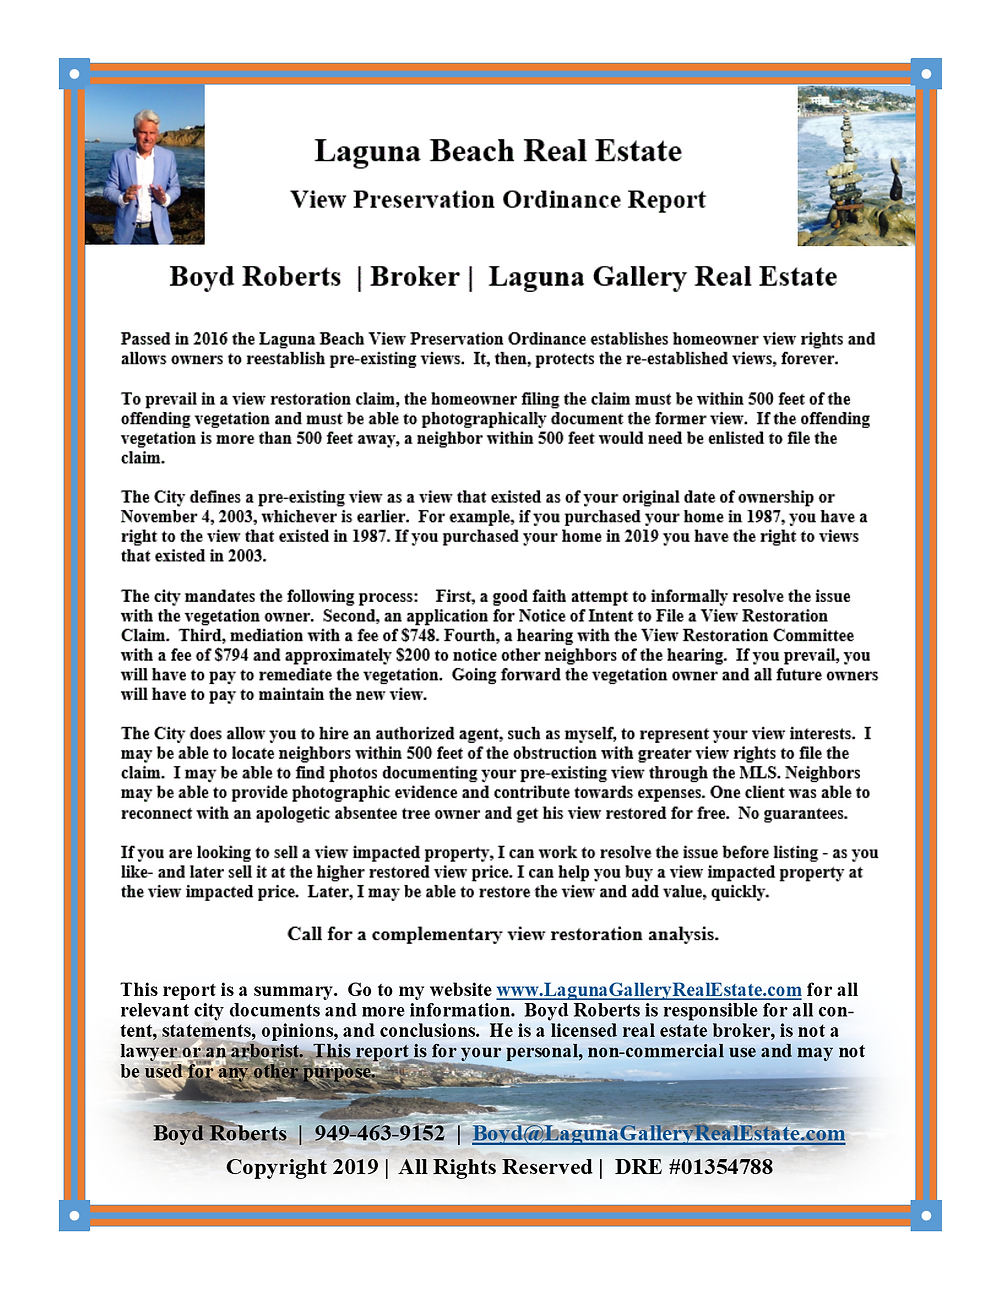 A special Laguna Beach real estate report on the Laguna Beach View Preservation Ordinance